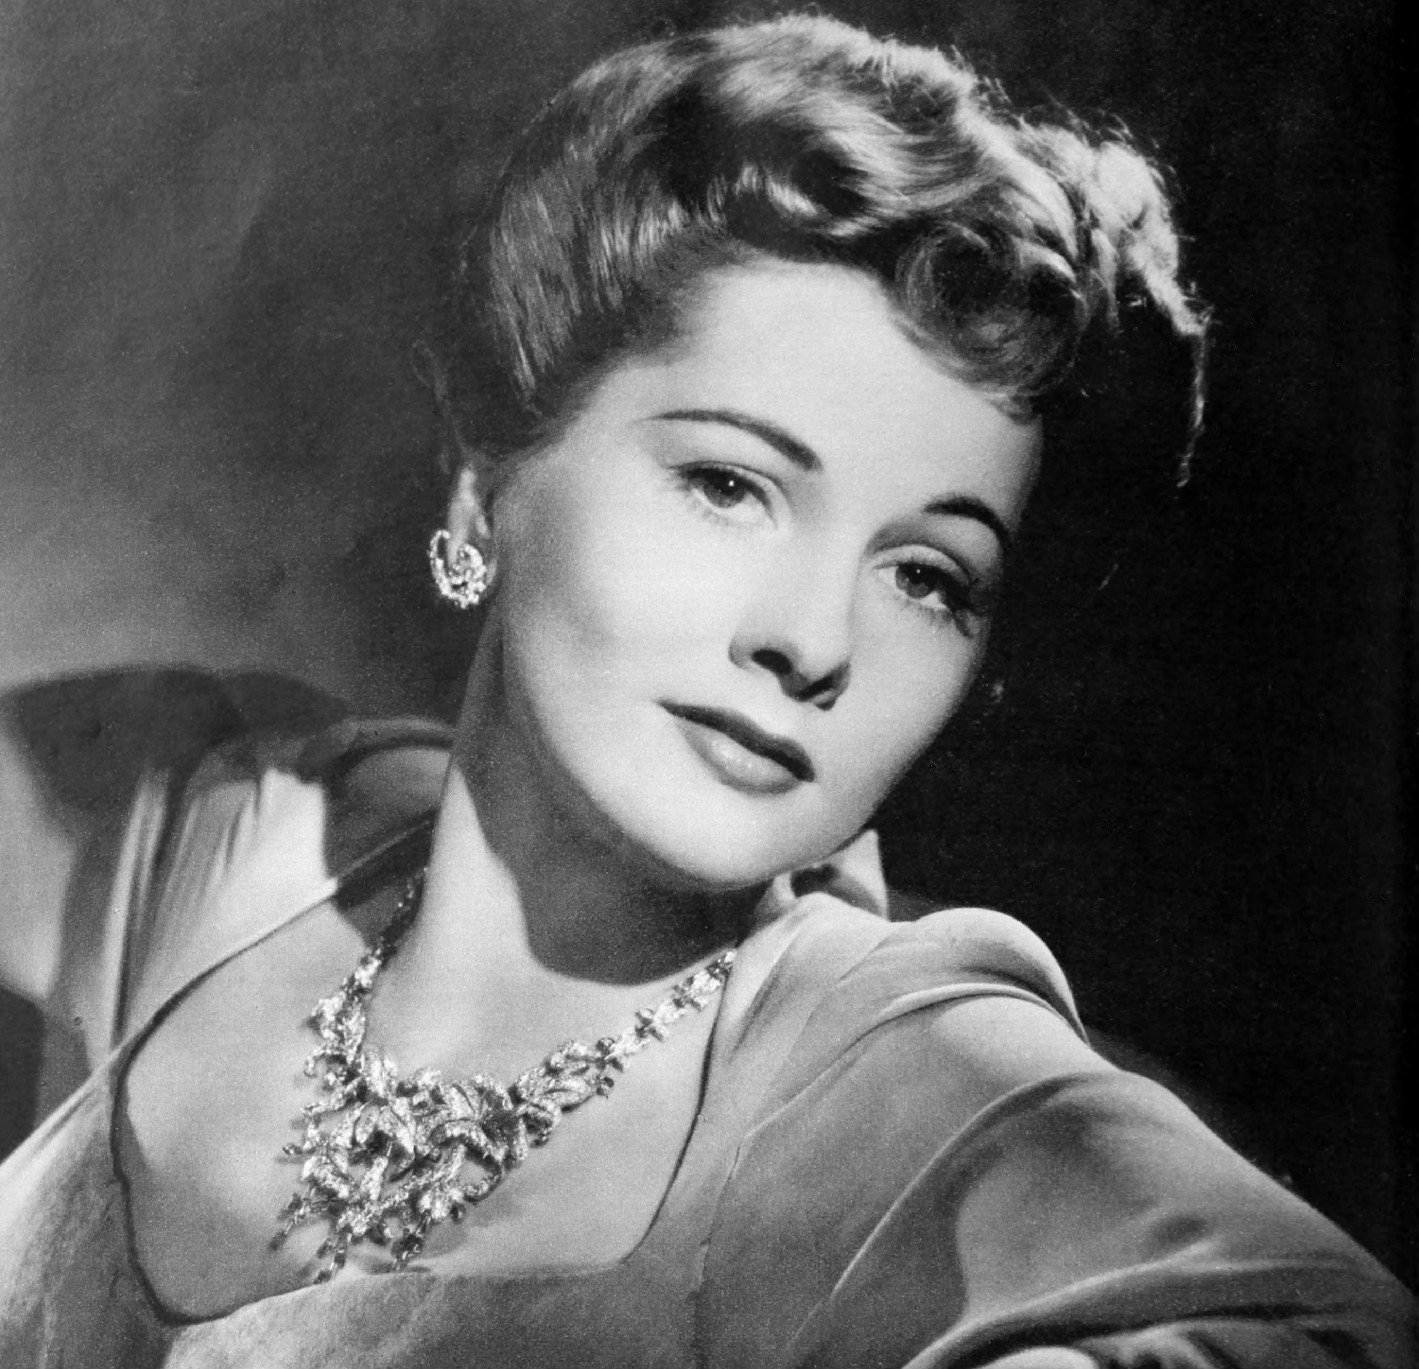 Image Source: Wikimedia Commons/Public Domain/Publicity photo for Joan Fontaine